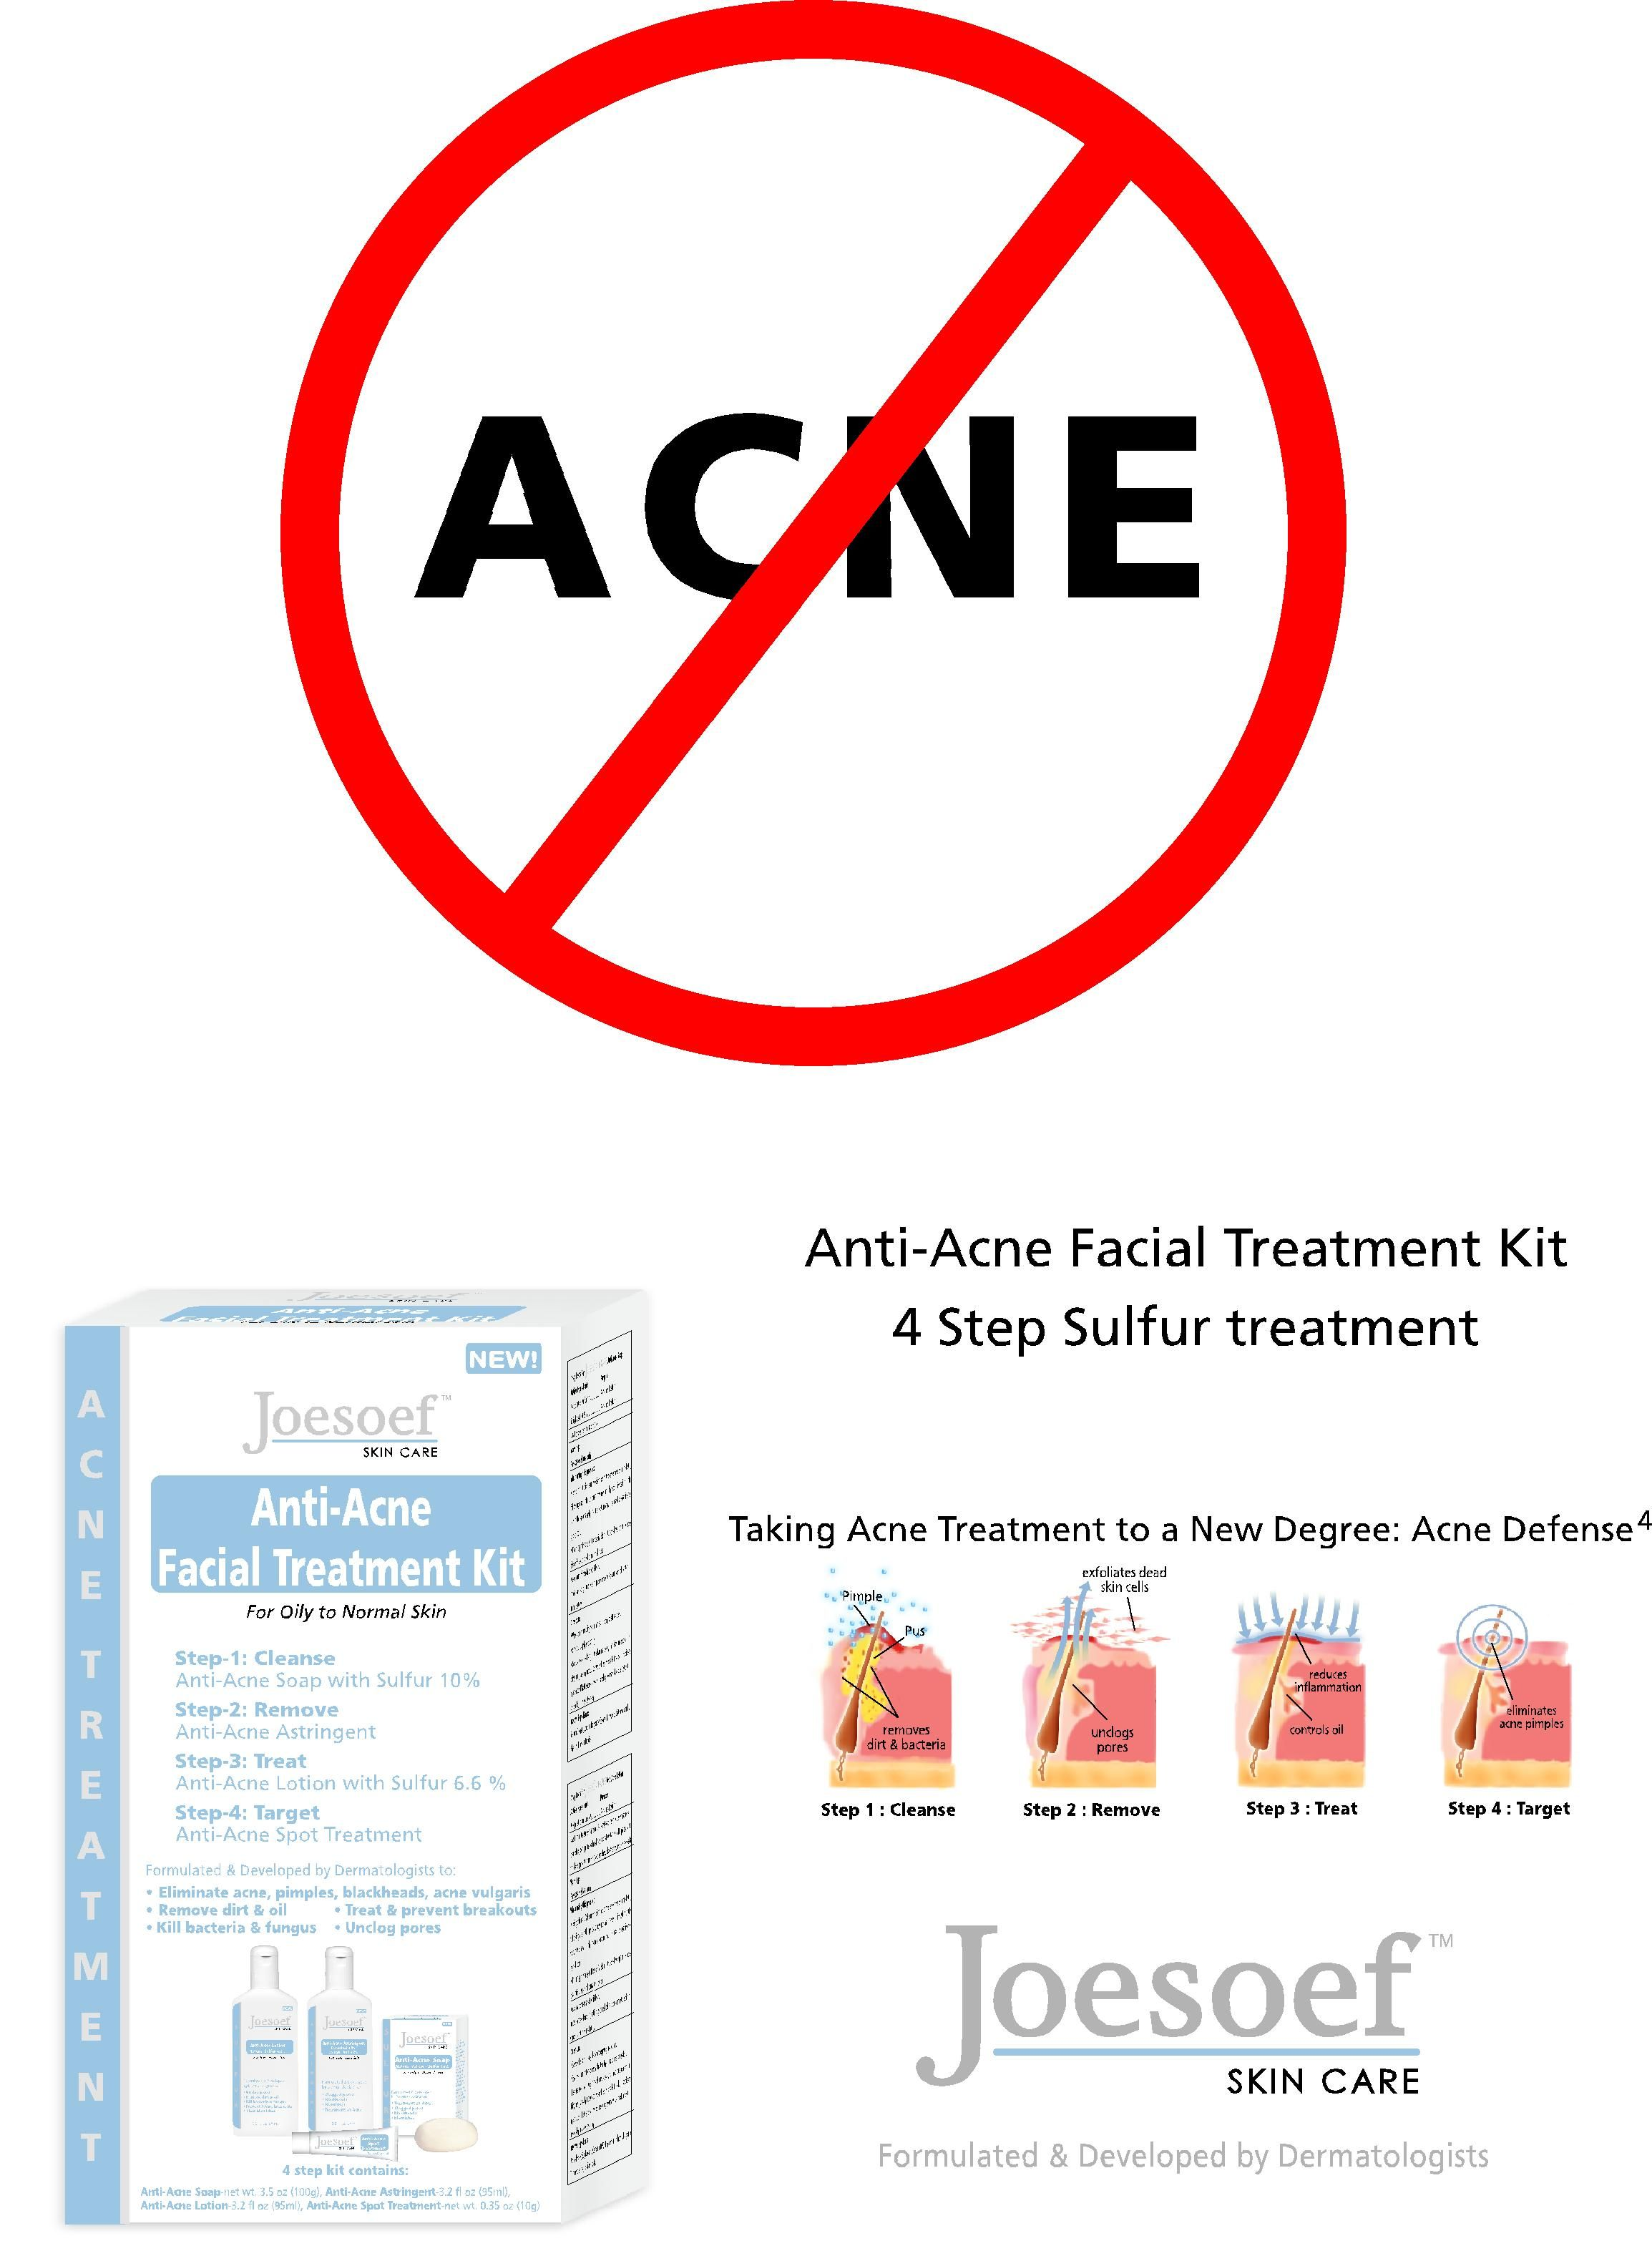 Pin By Joesoef Skin Care On Acne Facial Treatment How To Treat Acne